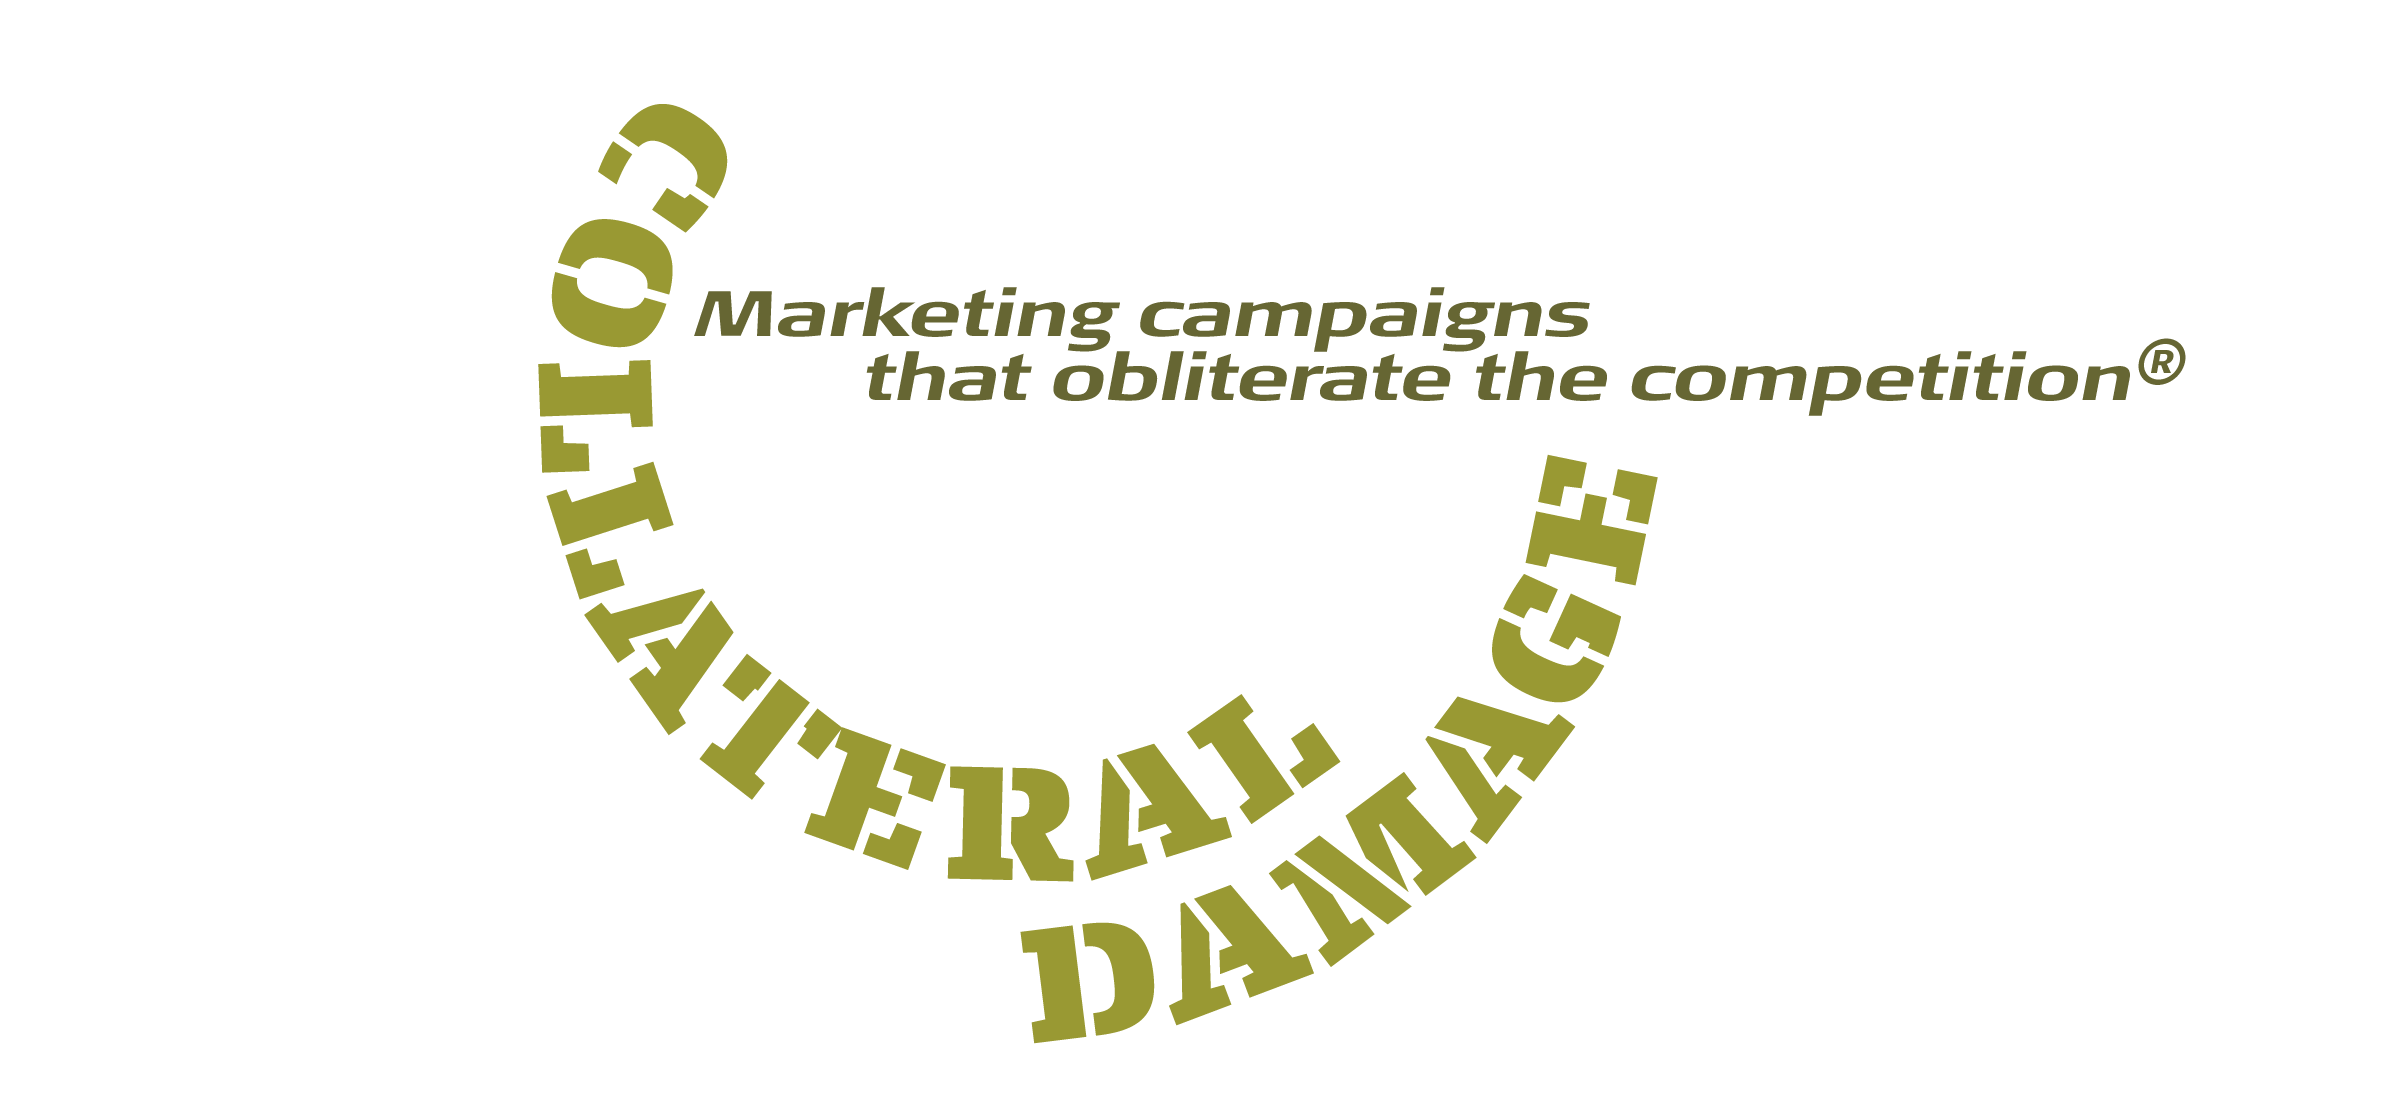 The finished spoof logo with custom-kerned text in circles. Because personal taste also plays a role in spacing and kerning, different people may come up with different solutions.